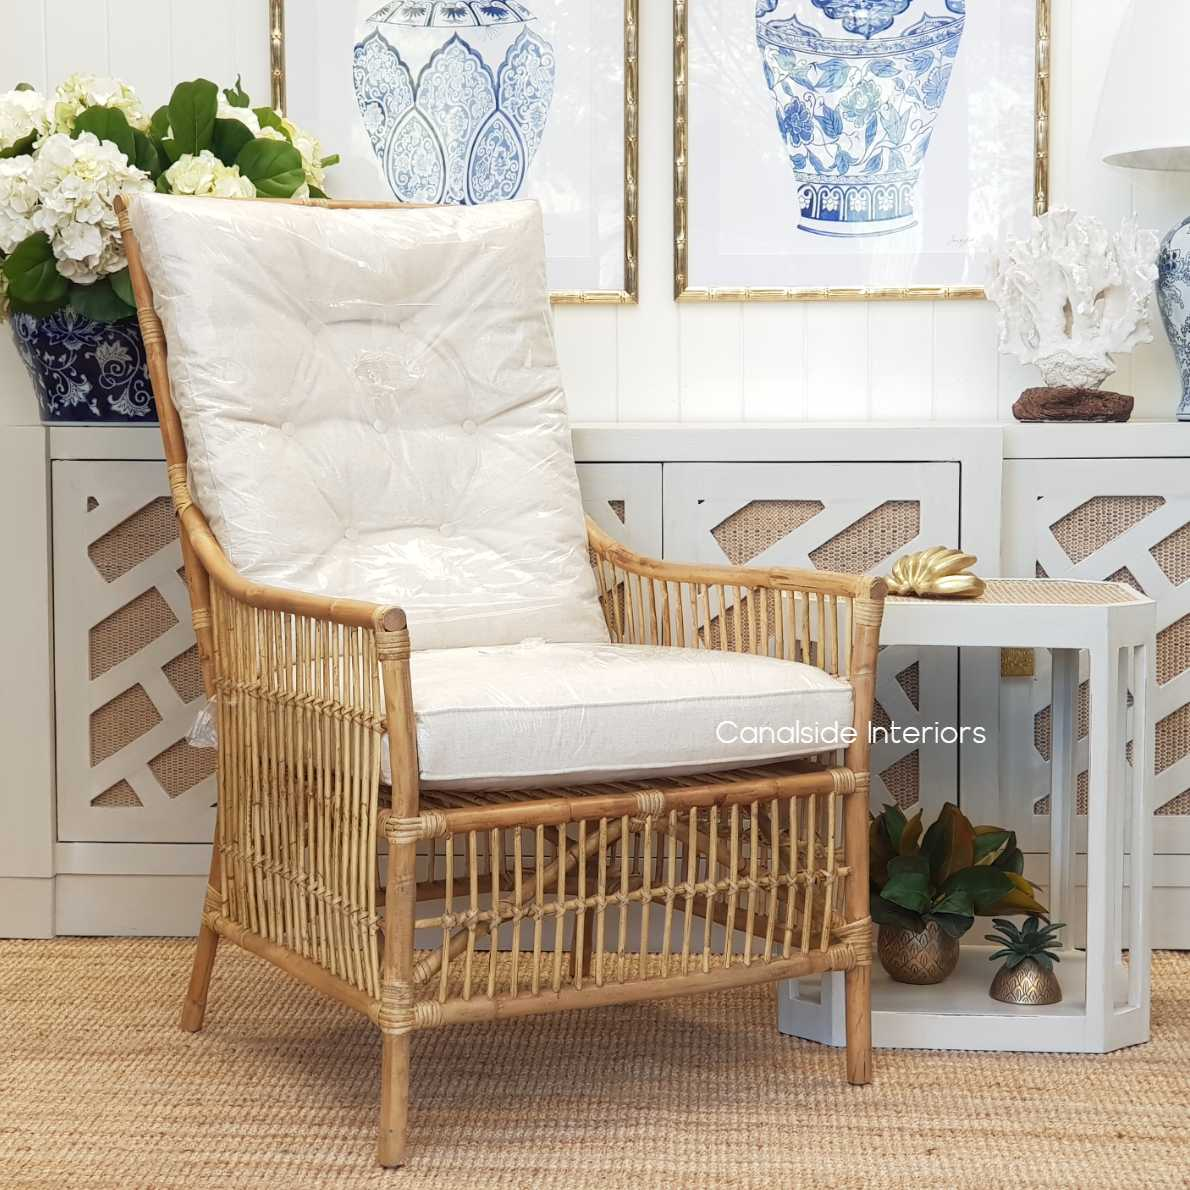 Raffles Cane Armchair  CHAIRS, HAMPTONS Style, PLANTATION Style, CHAIRS Lounge, LIVING Room, LIVING Chairs, PLANTATION STYLE Rattan Island living, british colonial